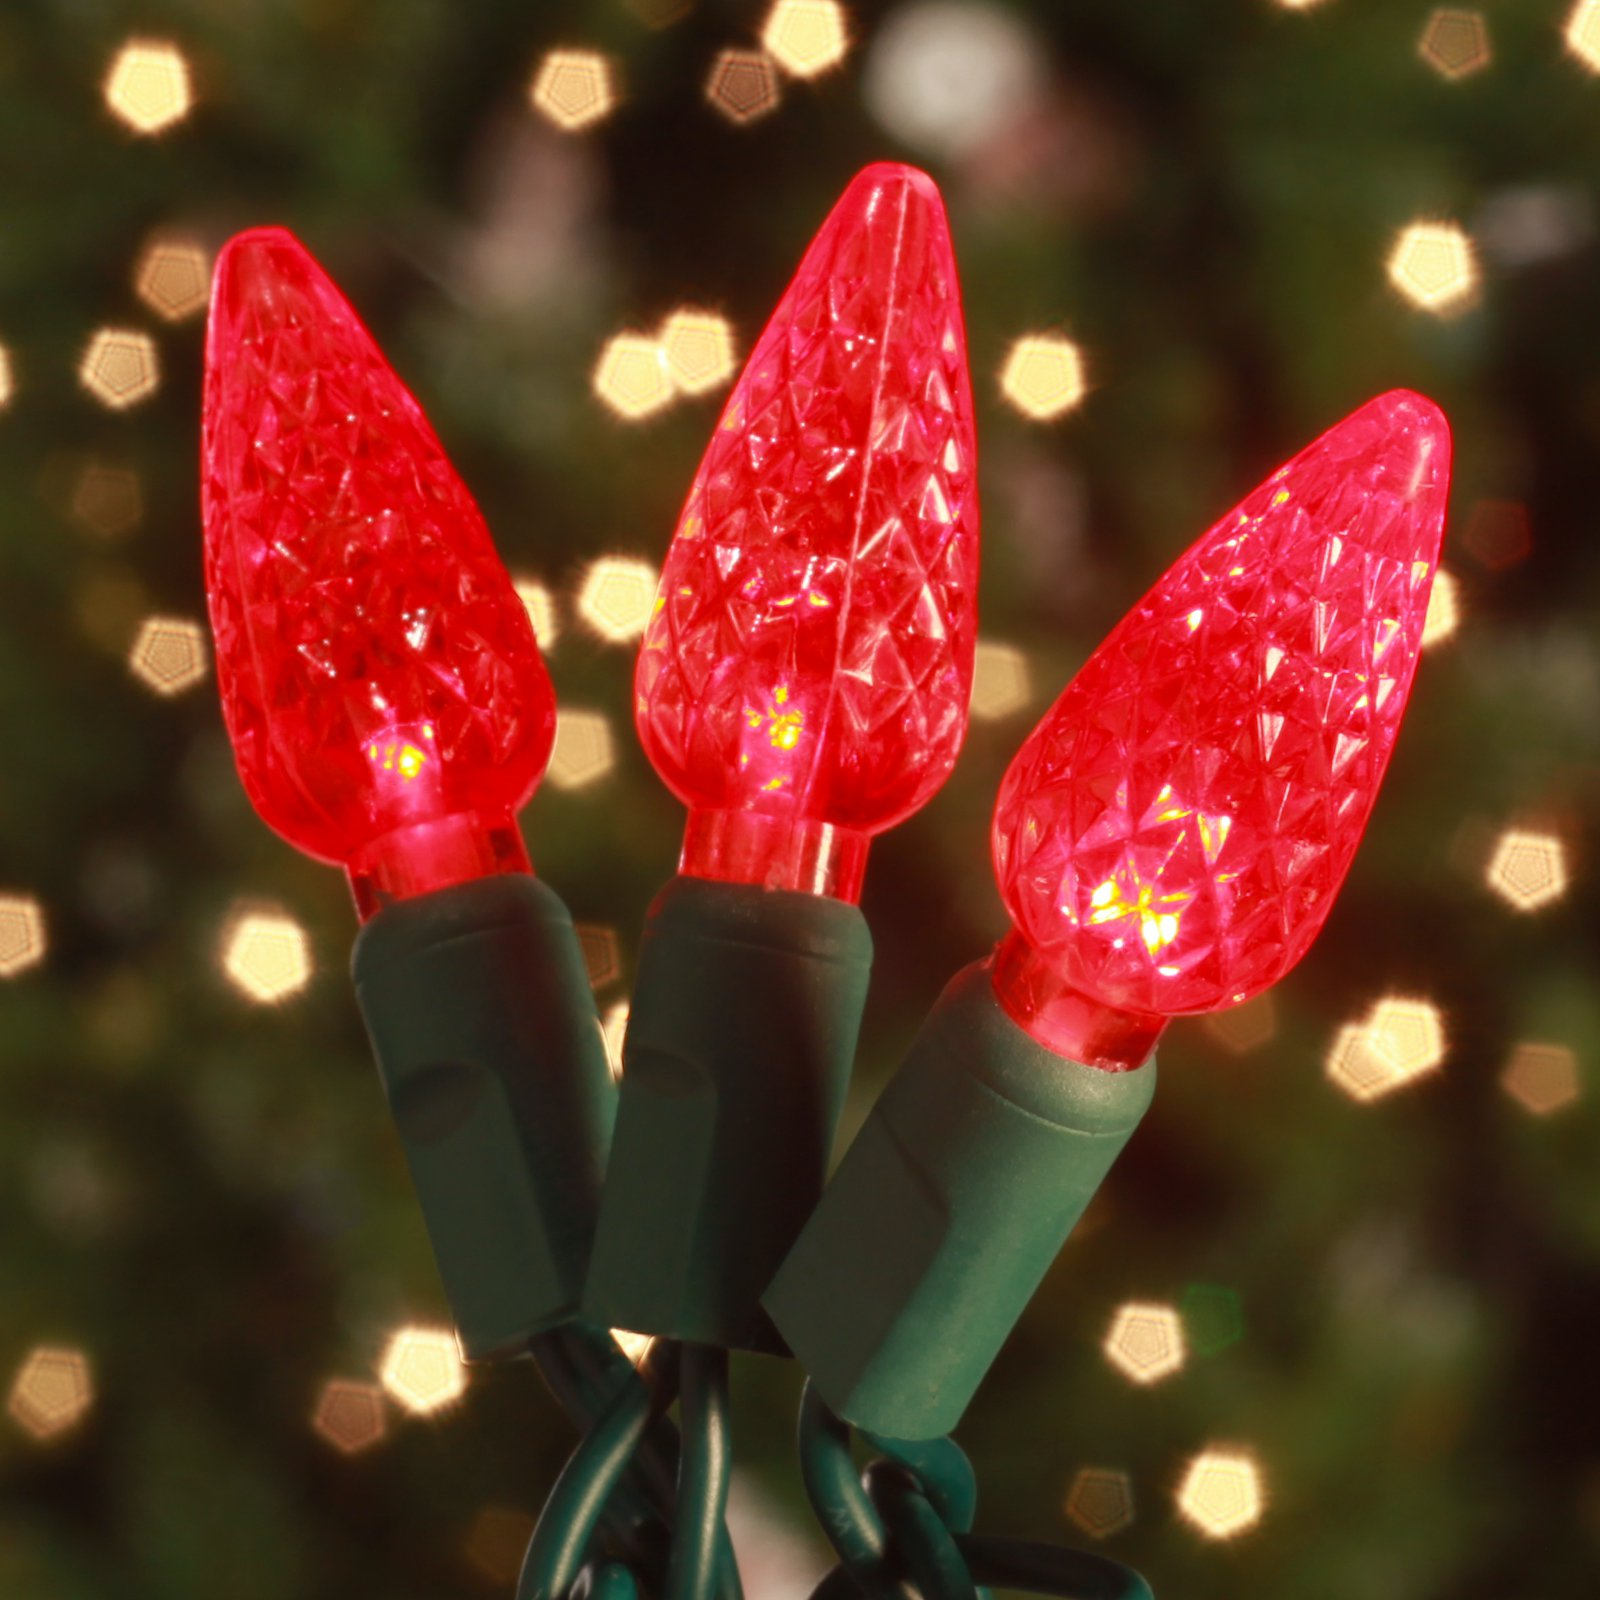 Commercial 70 ct. Red Strawberry LED Lights with 6 in. Spacing (Case)